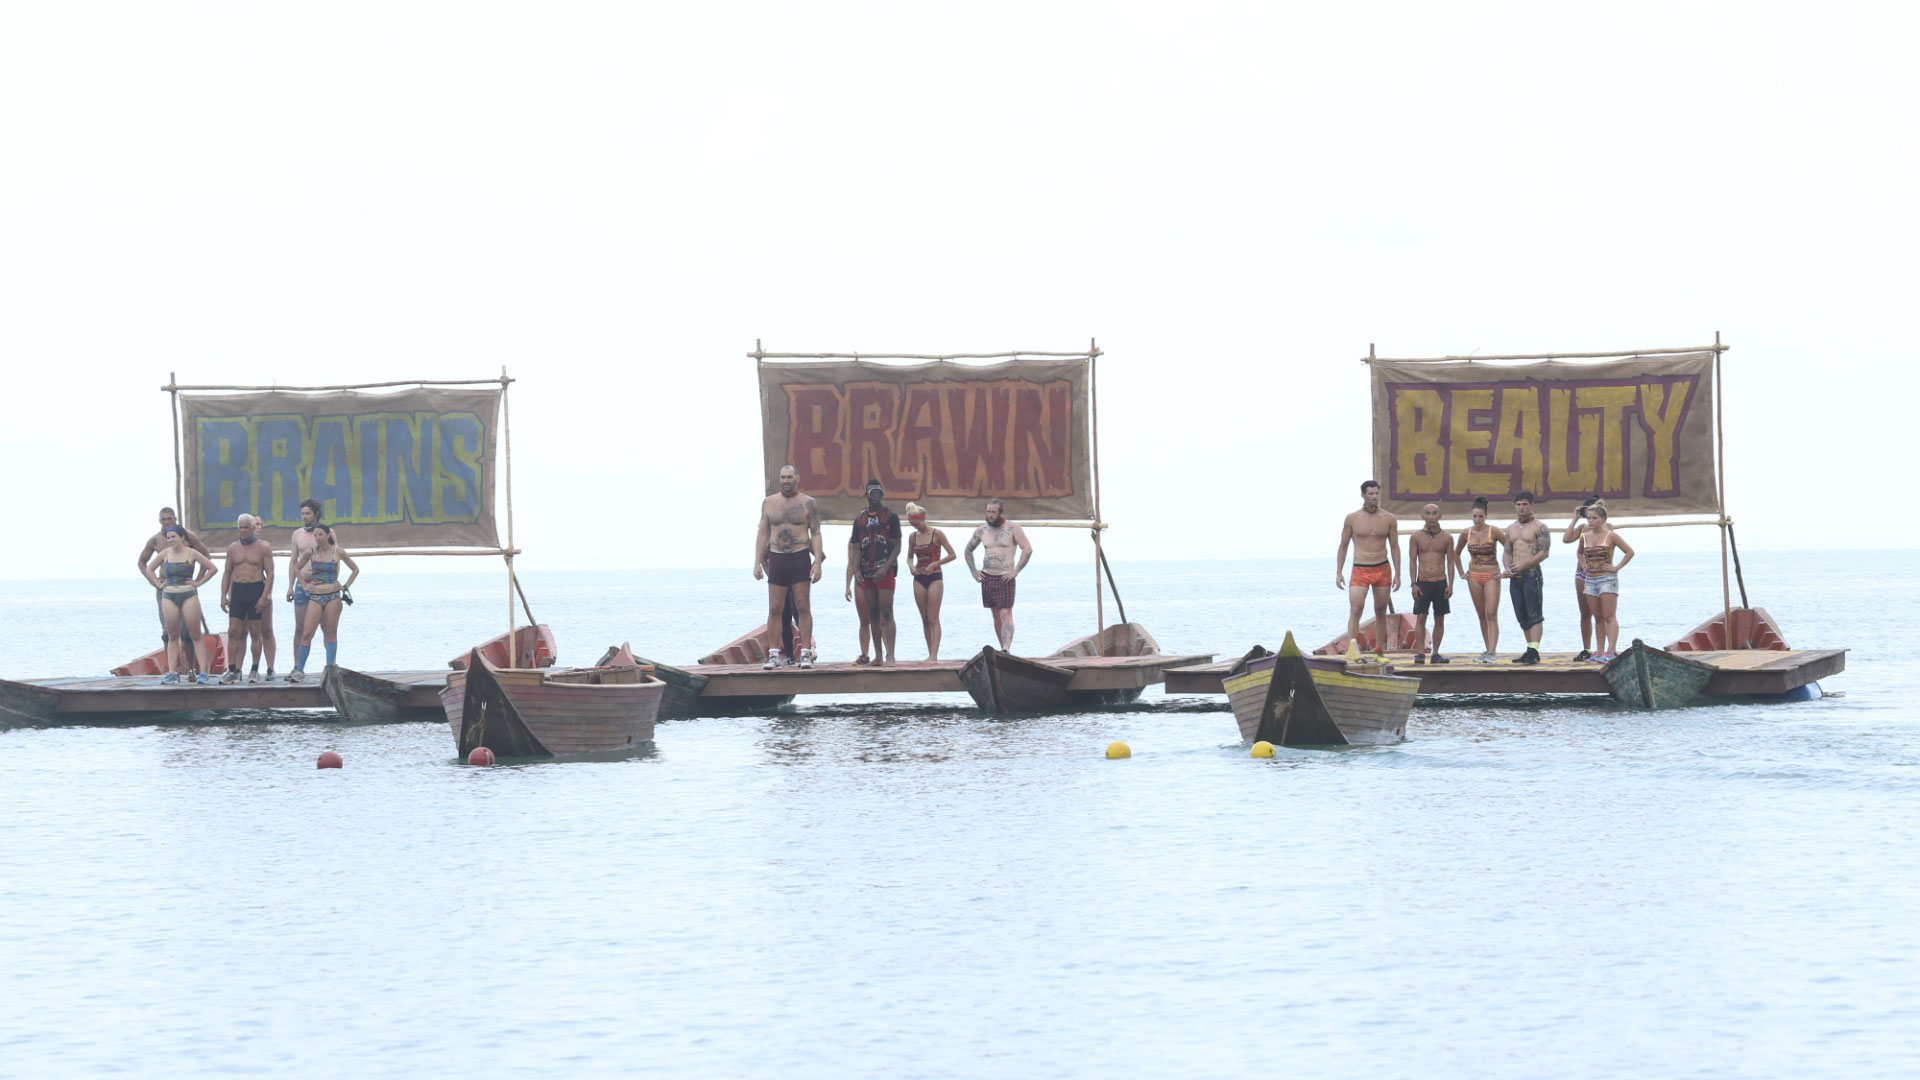 The two-hour Survivor Season 32 finale airs Wednesday, May 18 at 8/7c, followed by the Survivor Live Reunion at 10/9c.